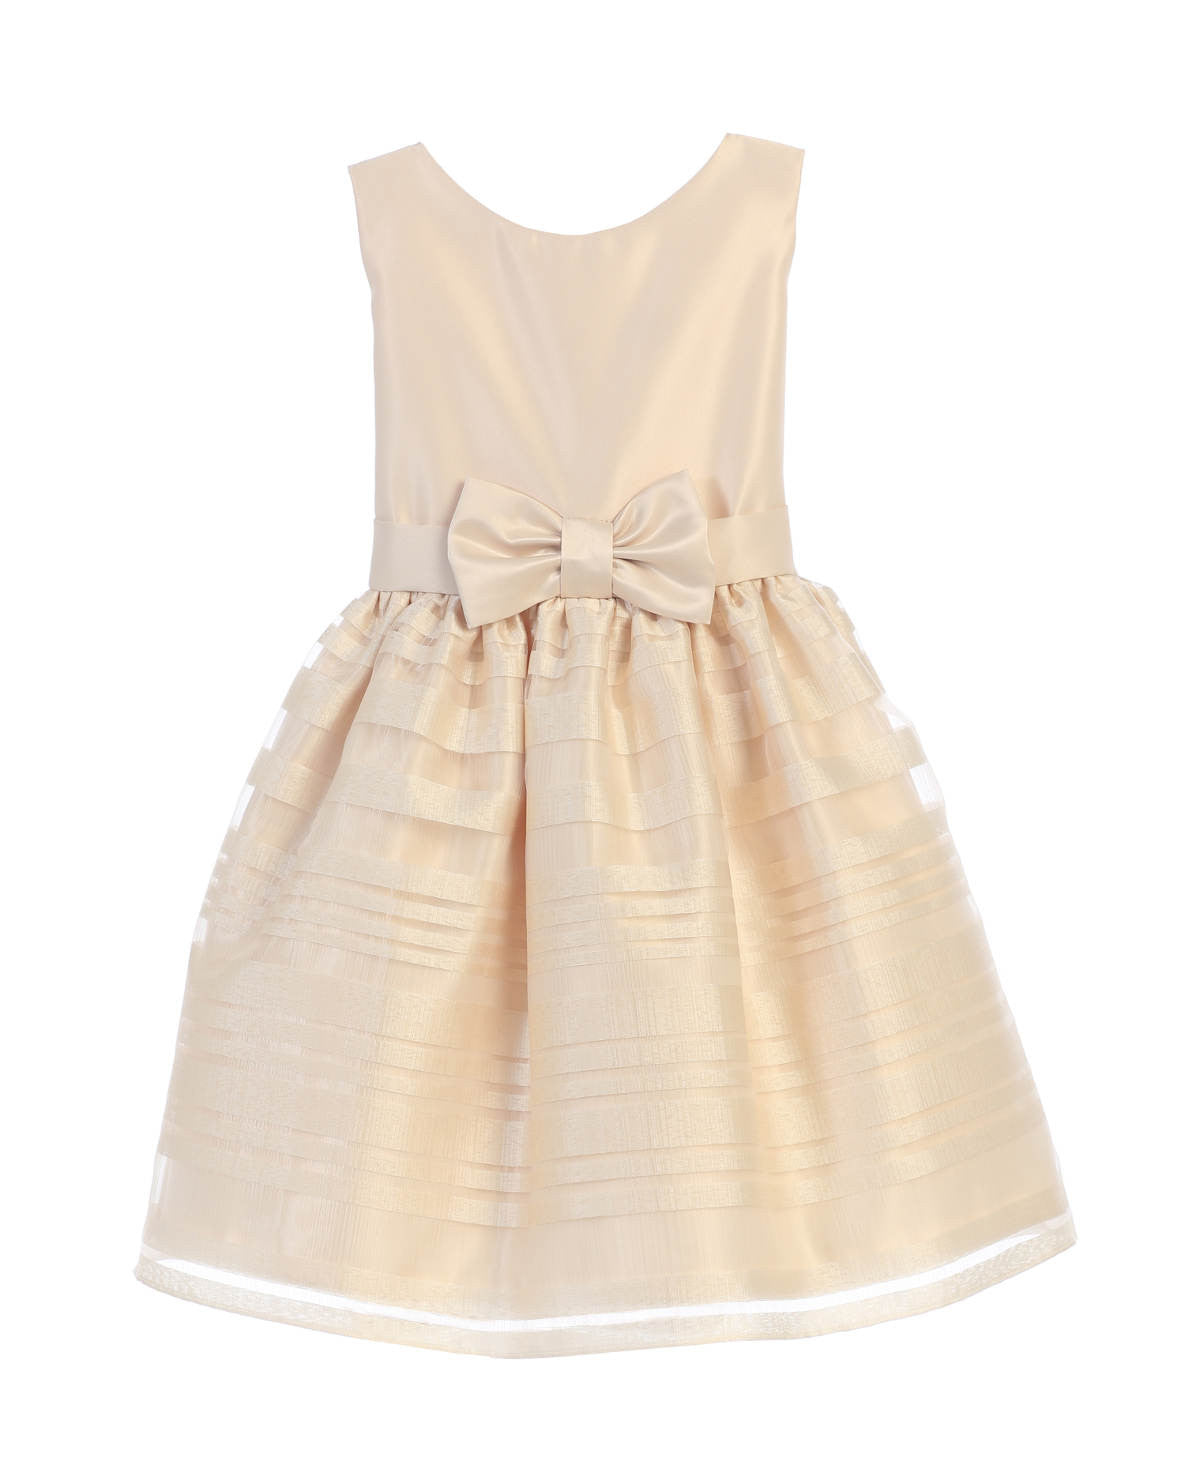 Sweet Kids Satin and Striped Organza Skirt Dress - Champagne, SK677